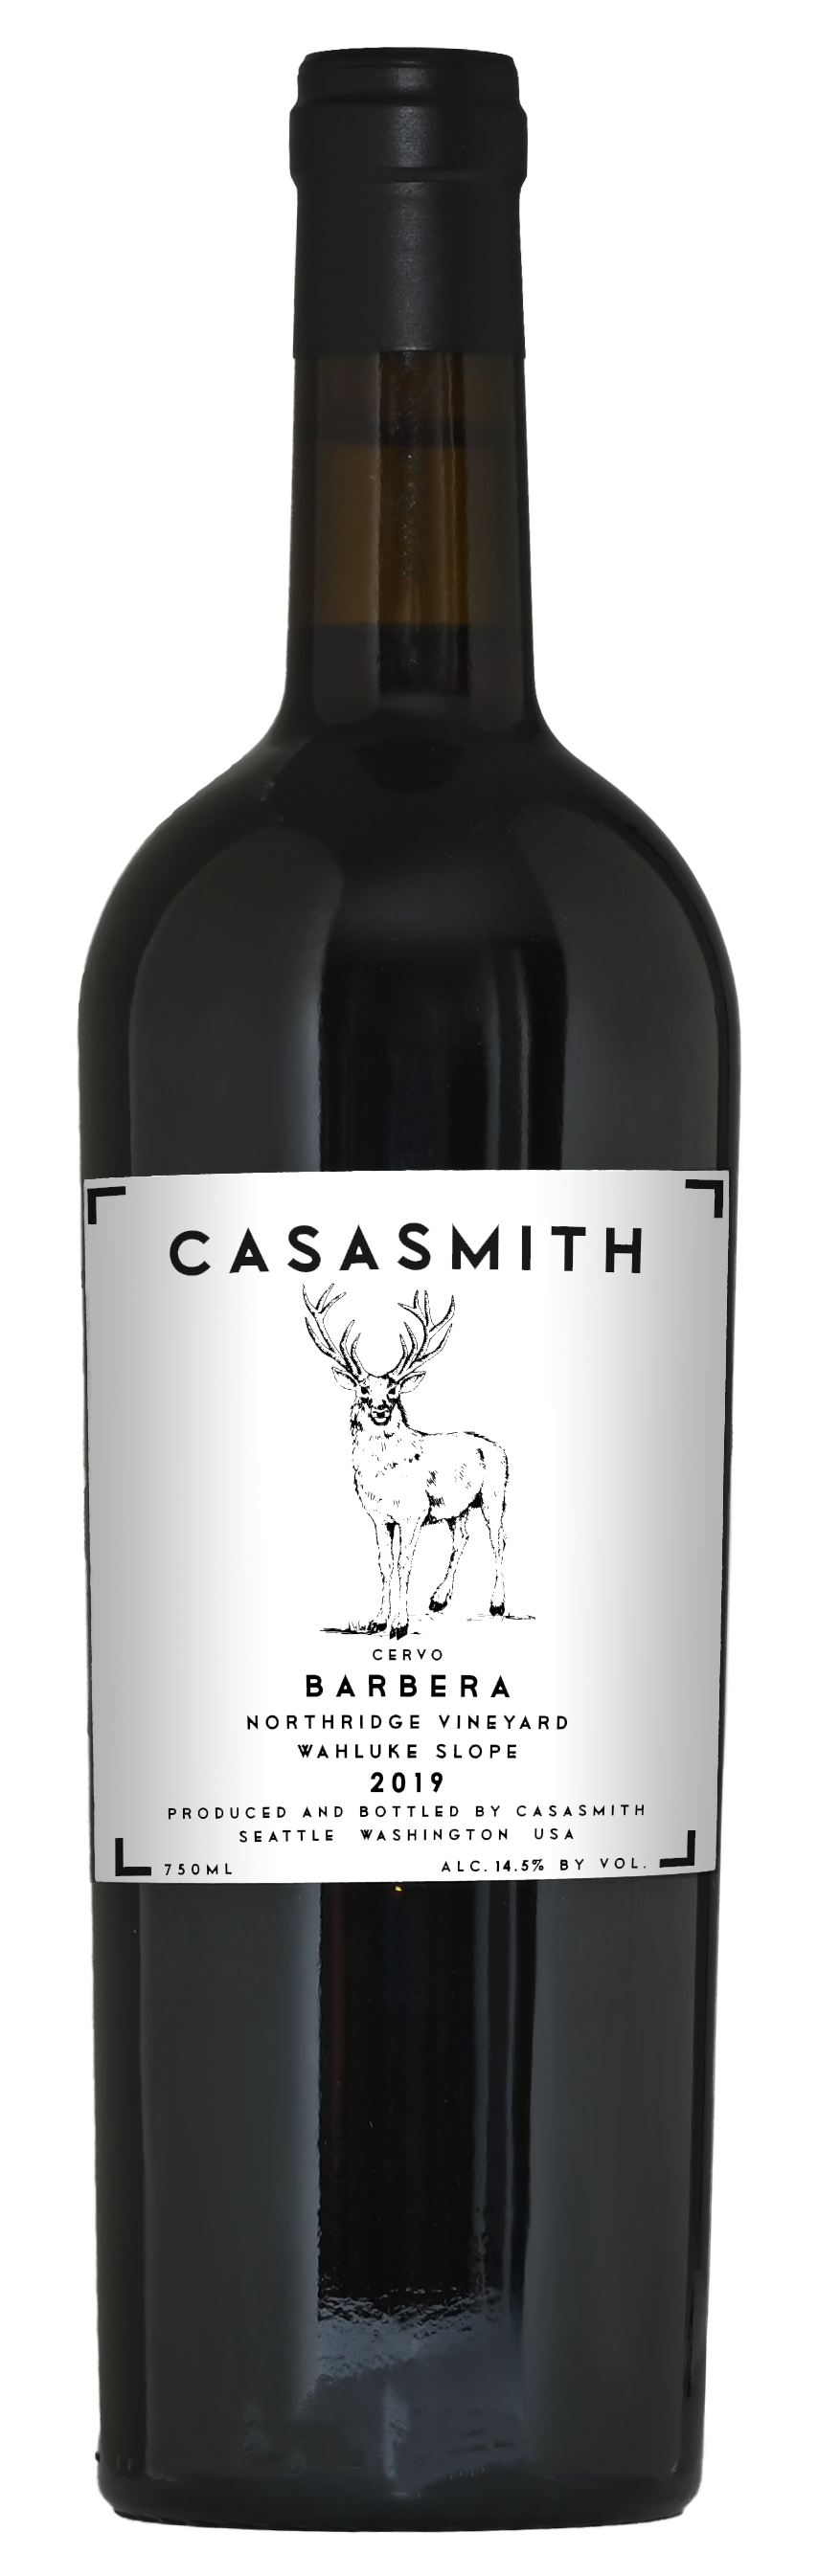 A tall dark Italian style bottle of wine. Black capsule on top and white label with black text that reads: CasaSmith Cervo Barbera, Wahluke Slope.